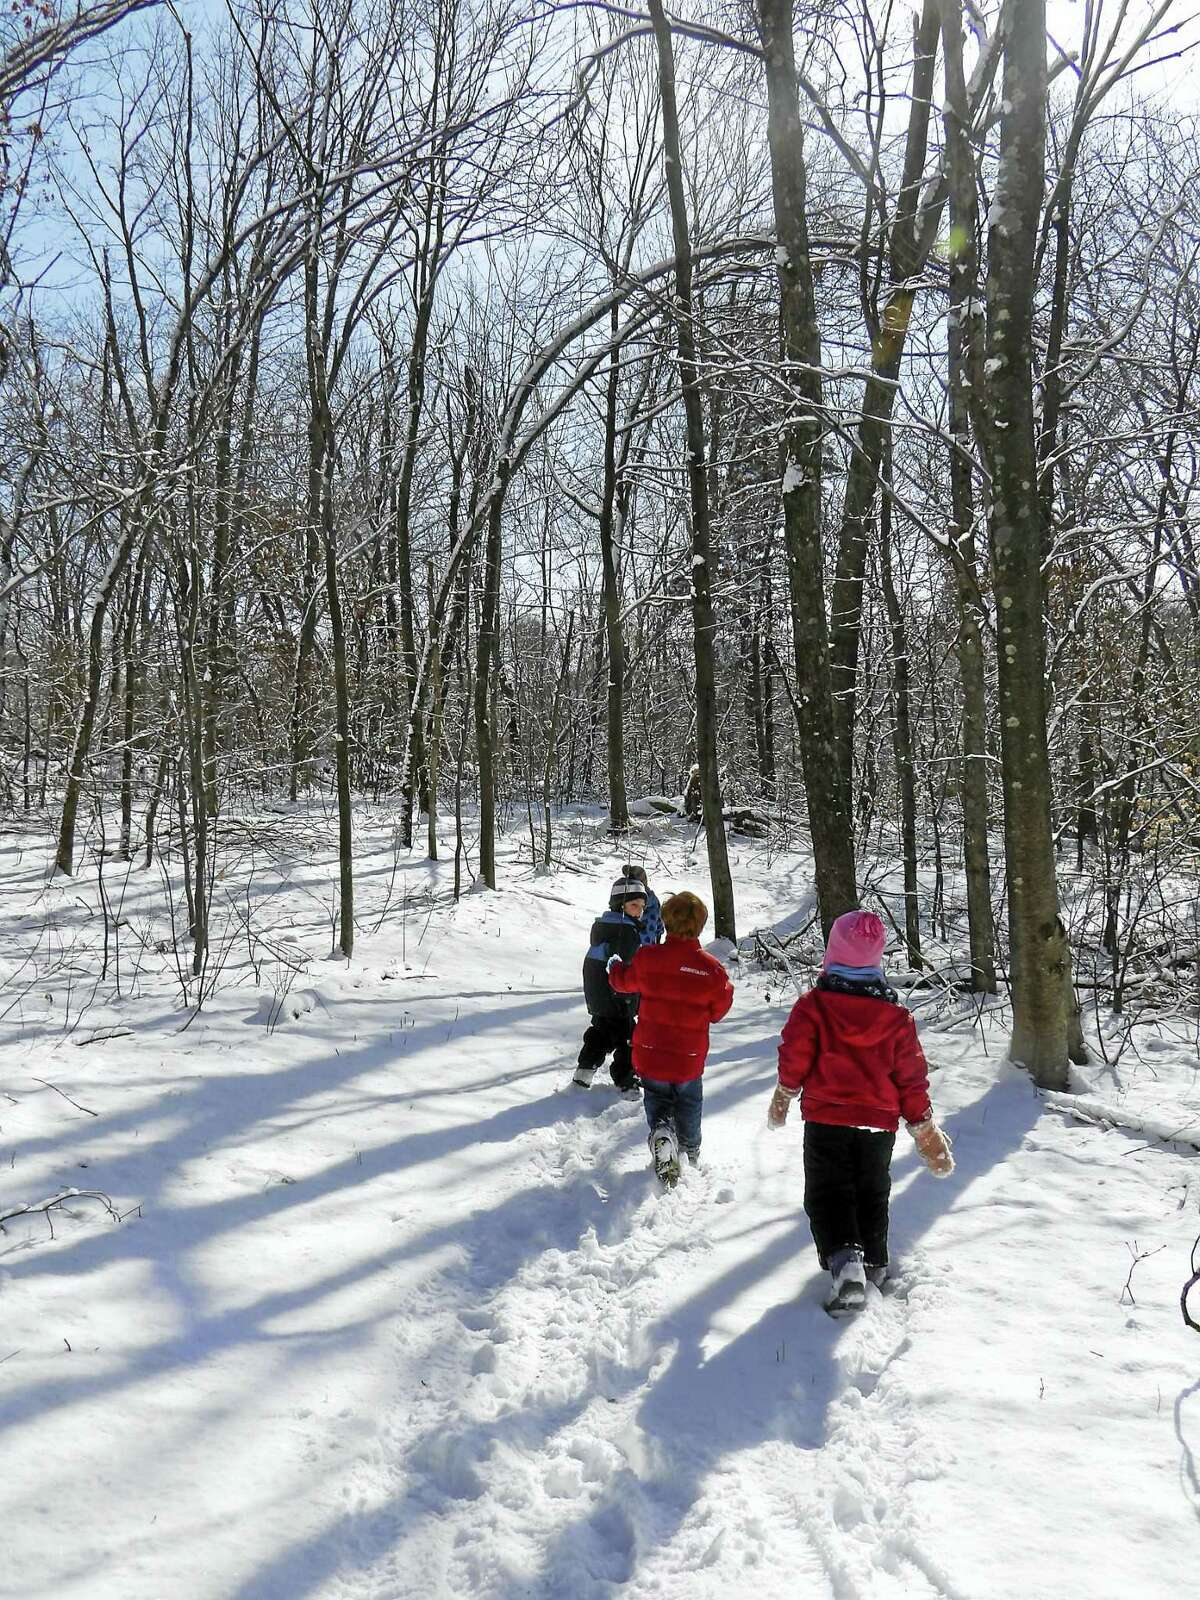 """On Monday, January 16 while off from school for the Martin Luther King Day holiday, kids in grades kindergarten through 5th are invited to come to Flanders to experience """"A Flanders Adventure"""" where they will spend the day learning about the animals that live at Flanders and in the wild. We will be taking a hike to find tracks to see who is active in the snow. This will be a fun filled day packed with exploring the great outdoors, and age appropriate stories, games and crafts. Preregistration is required. Flanders is offering three different sessions for this special adventure. Choose the morning session from 9AM to 1PM, the afternoon session from 1-5PM or a full day session which goes from 9AM -5PM. Parents are asked to have their children dress for the weather and to bring a bag lunch or snack. Pre-registration is required. The cost per child for either the morning or afternoon session is $30 members and $40 for nonmembers. Full day cost is $60 for members and $80 for nonmembers. Early care is available at $7 per hour. To register, call Flanders at (203) 263-3711, extension 10. For a full listing of all the programs for kids and adults coming up at Flanders visit www.flandersnaturecenter.org or like them on their Facebook page."""